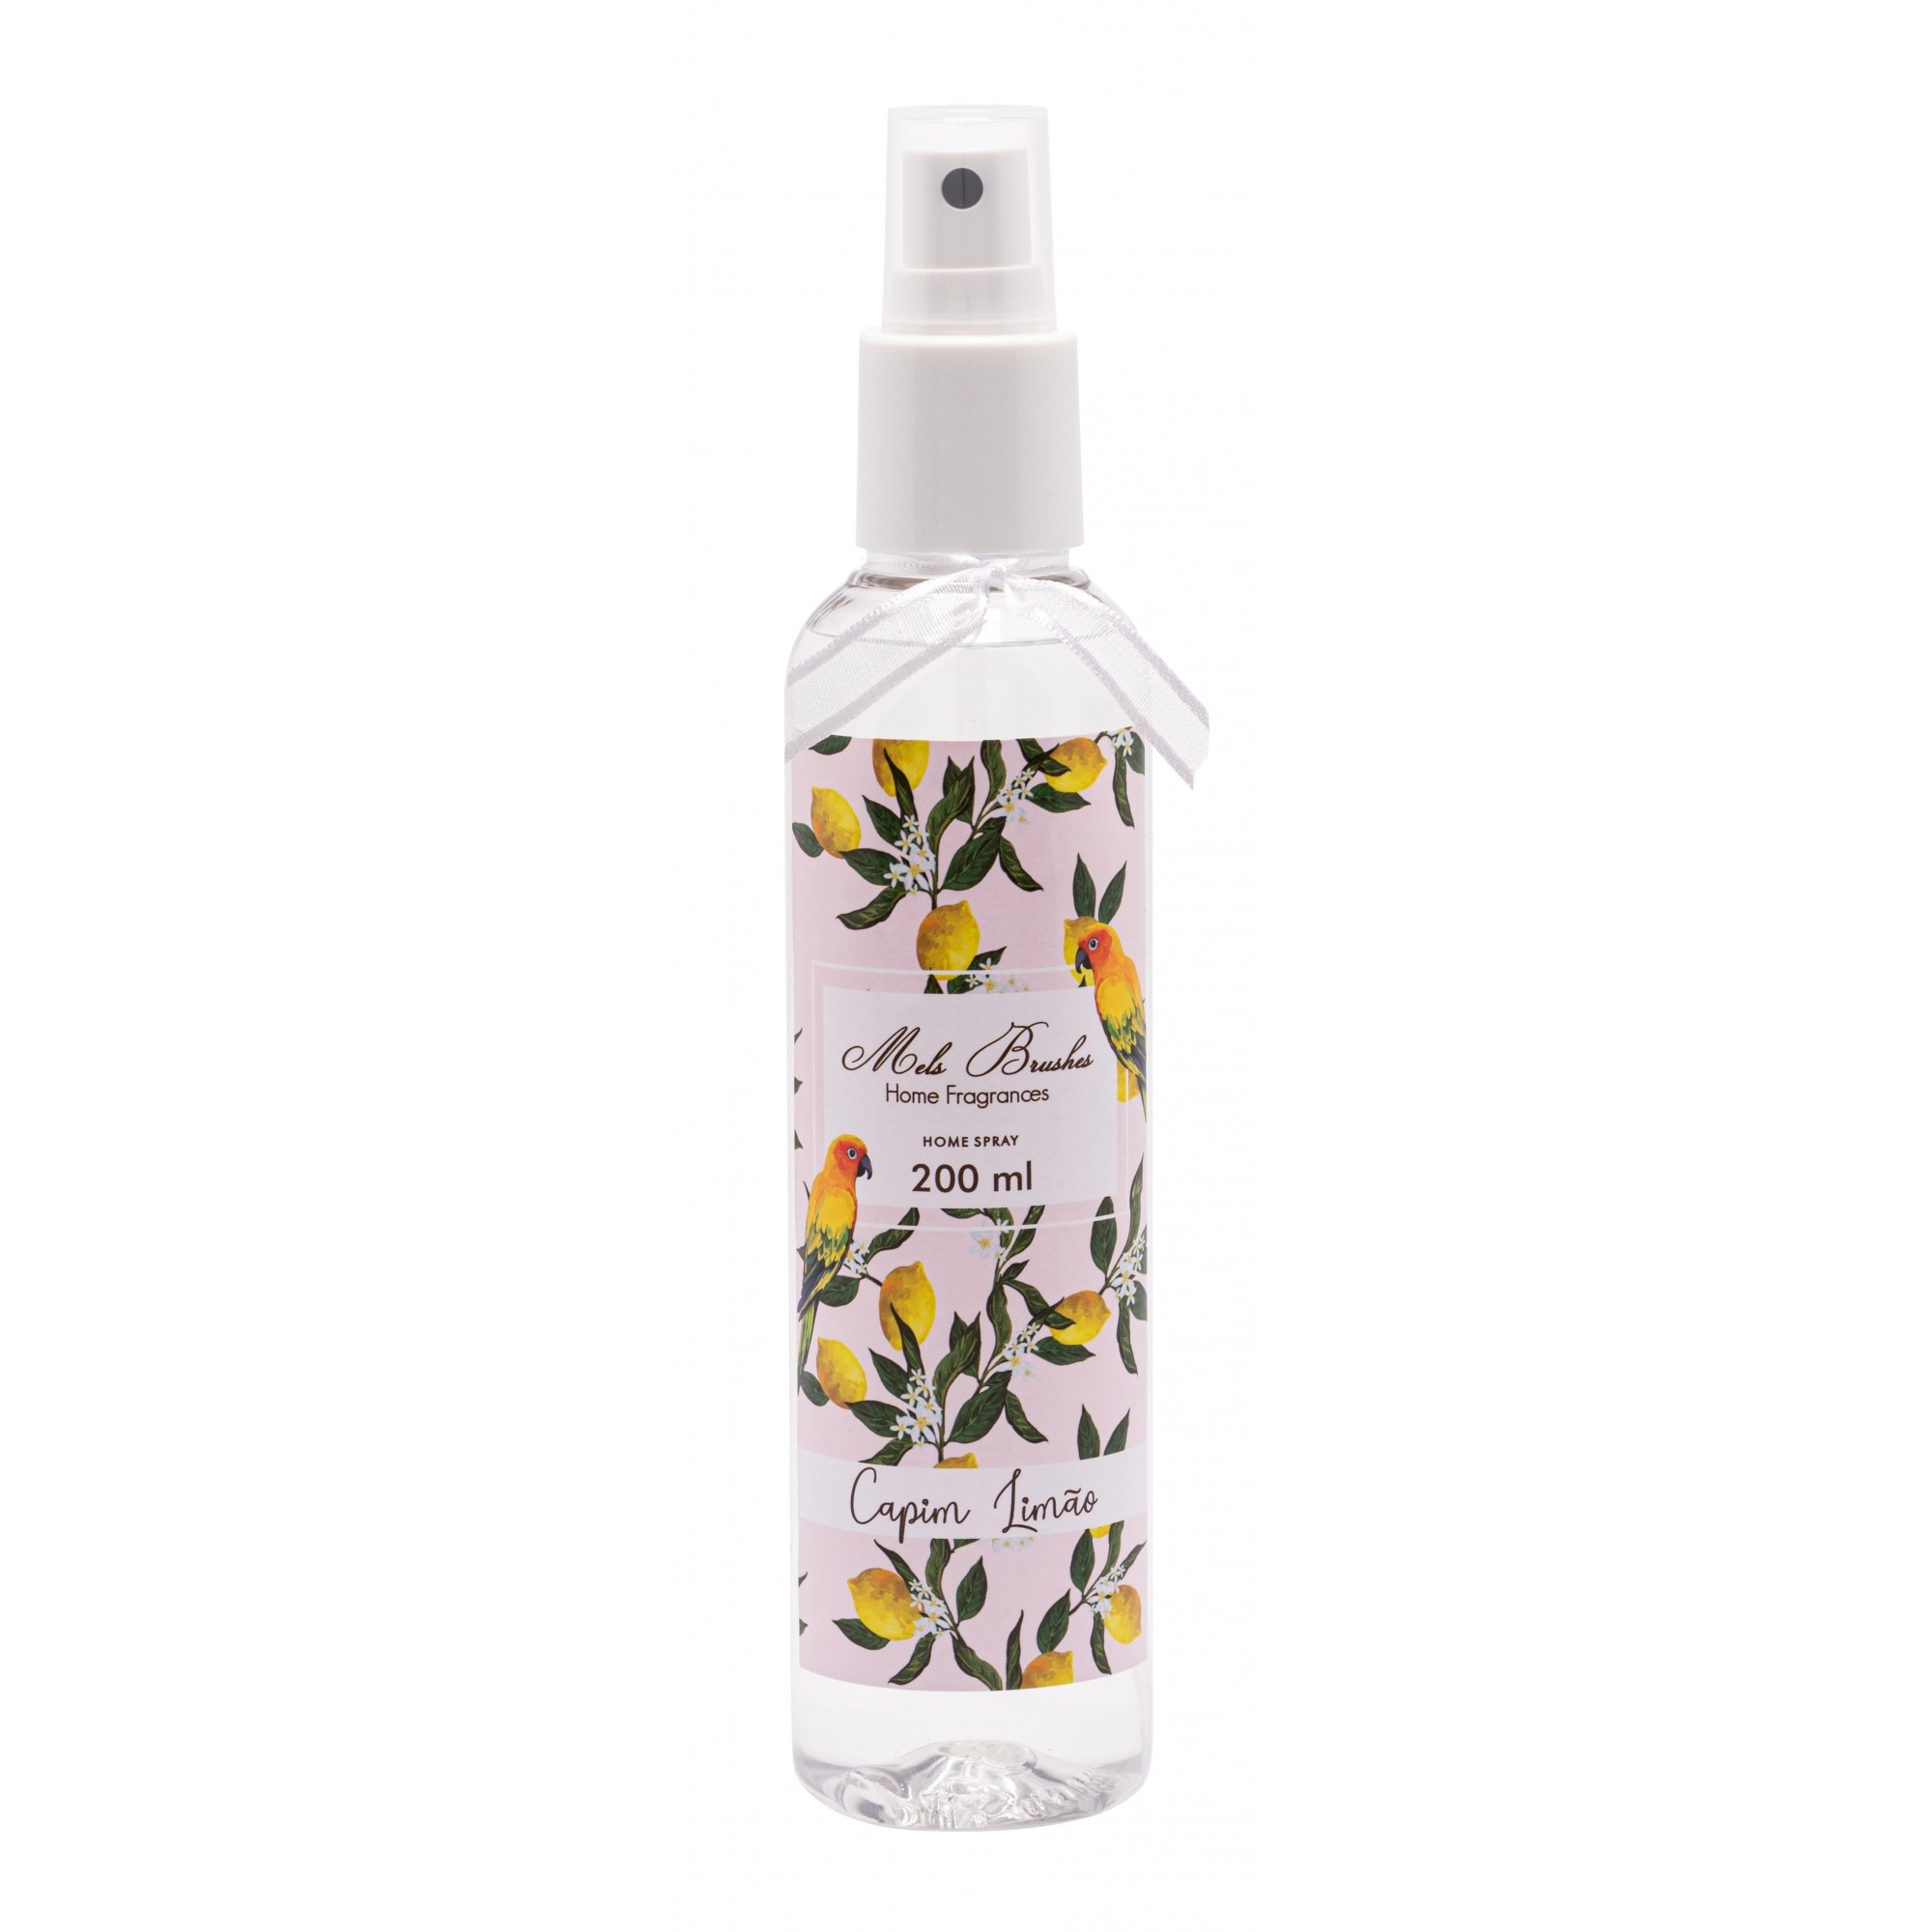 AROMATIZANTE SPRAY CAPIM LIMÃO 200 ML